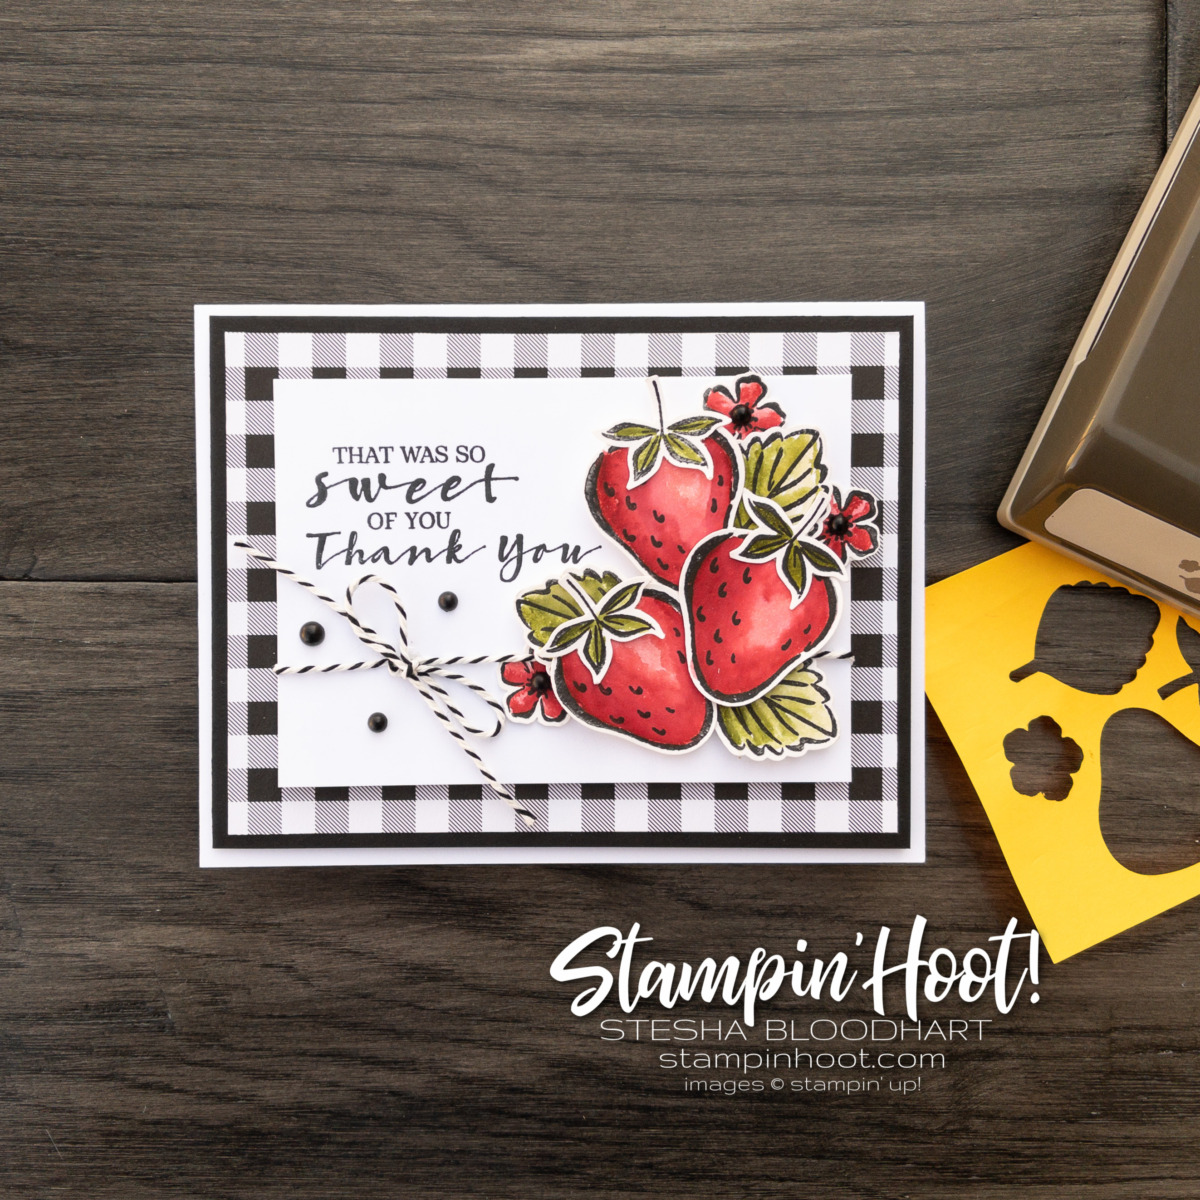 Sweet Strawberry Bundle from Stampin' Up! Thank You Card by Stesha Bloodhart. Stampin' Hoot!